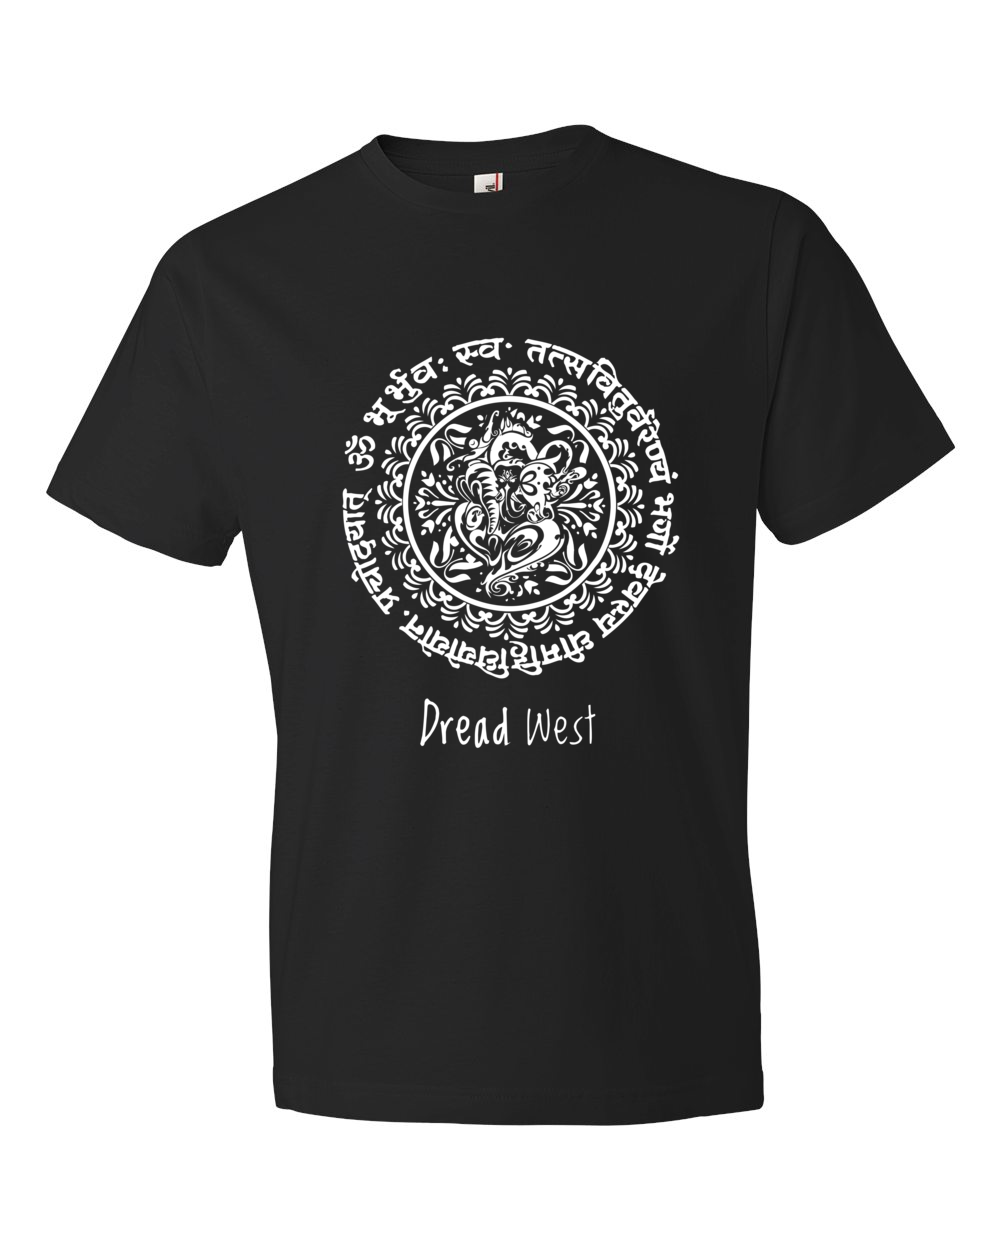 DreadWest Mantra - men's short sleeve t-shirt - DreadWest Clothing , DreadWest - DreadWest,  - Apparel, DreadWest - DreadWest